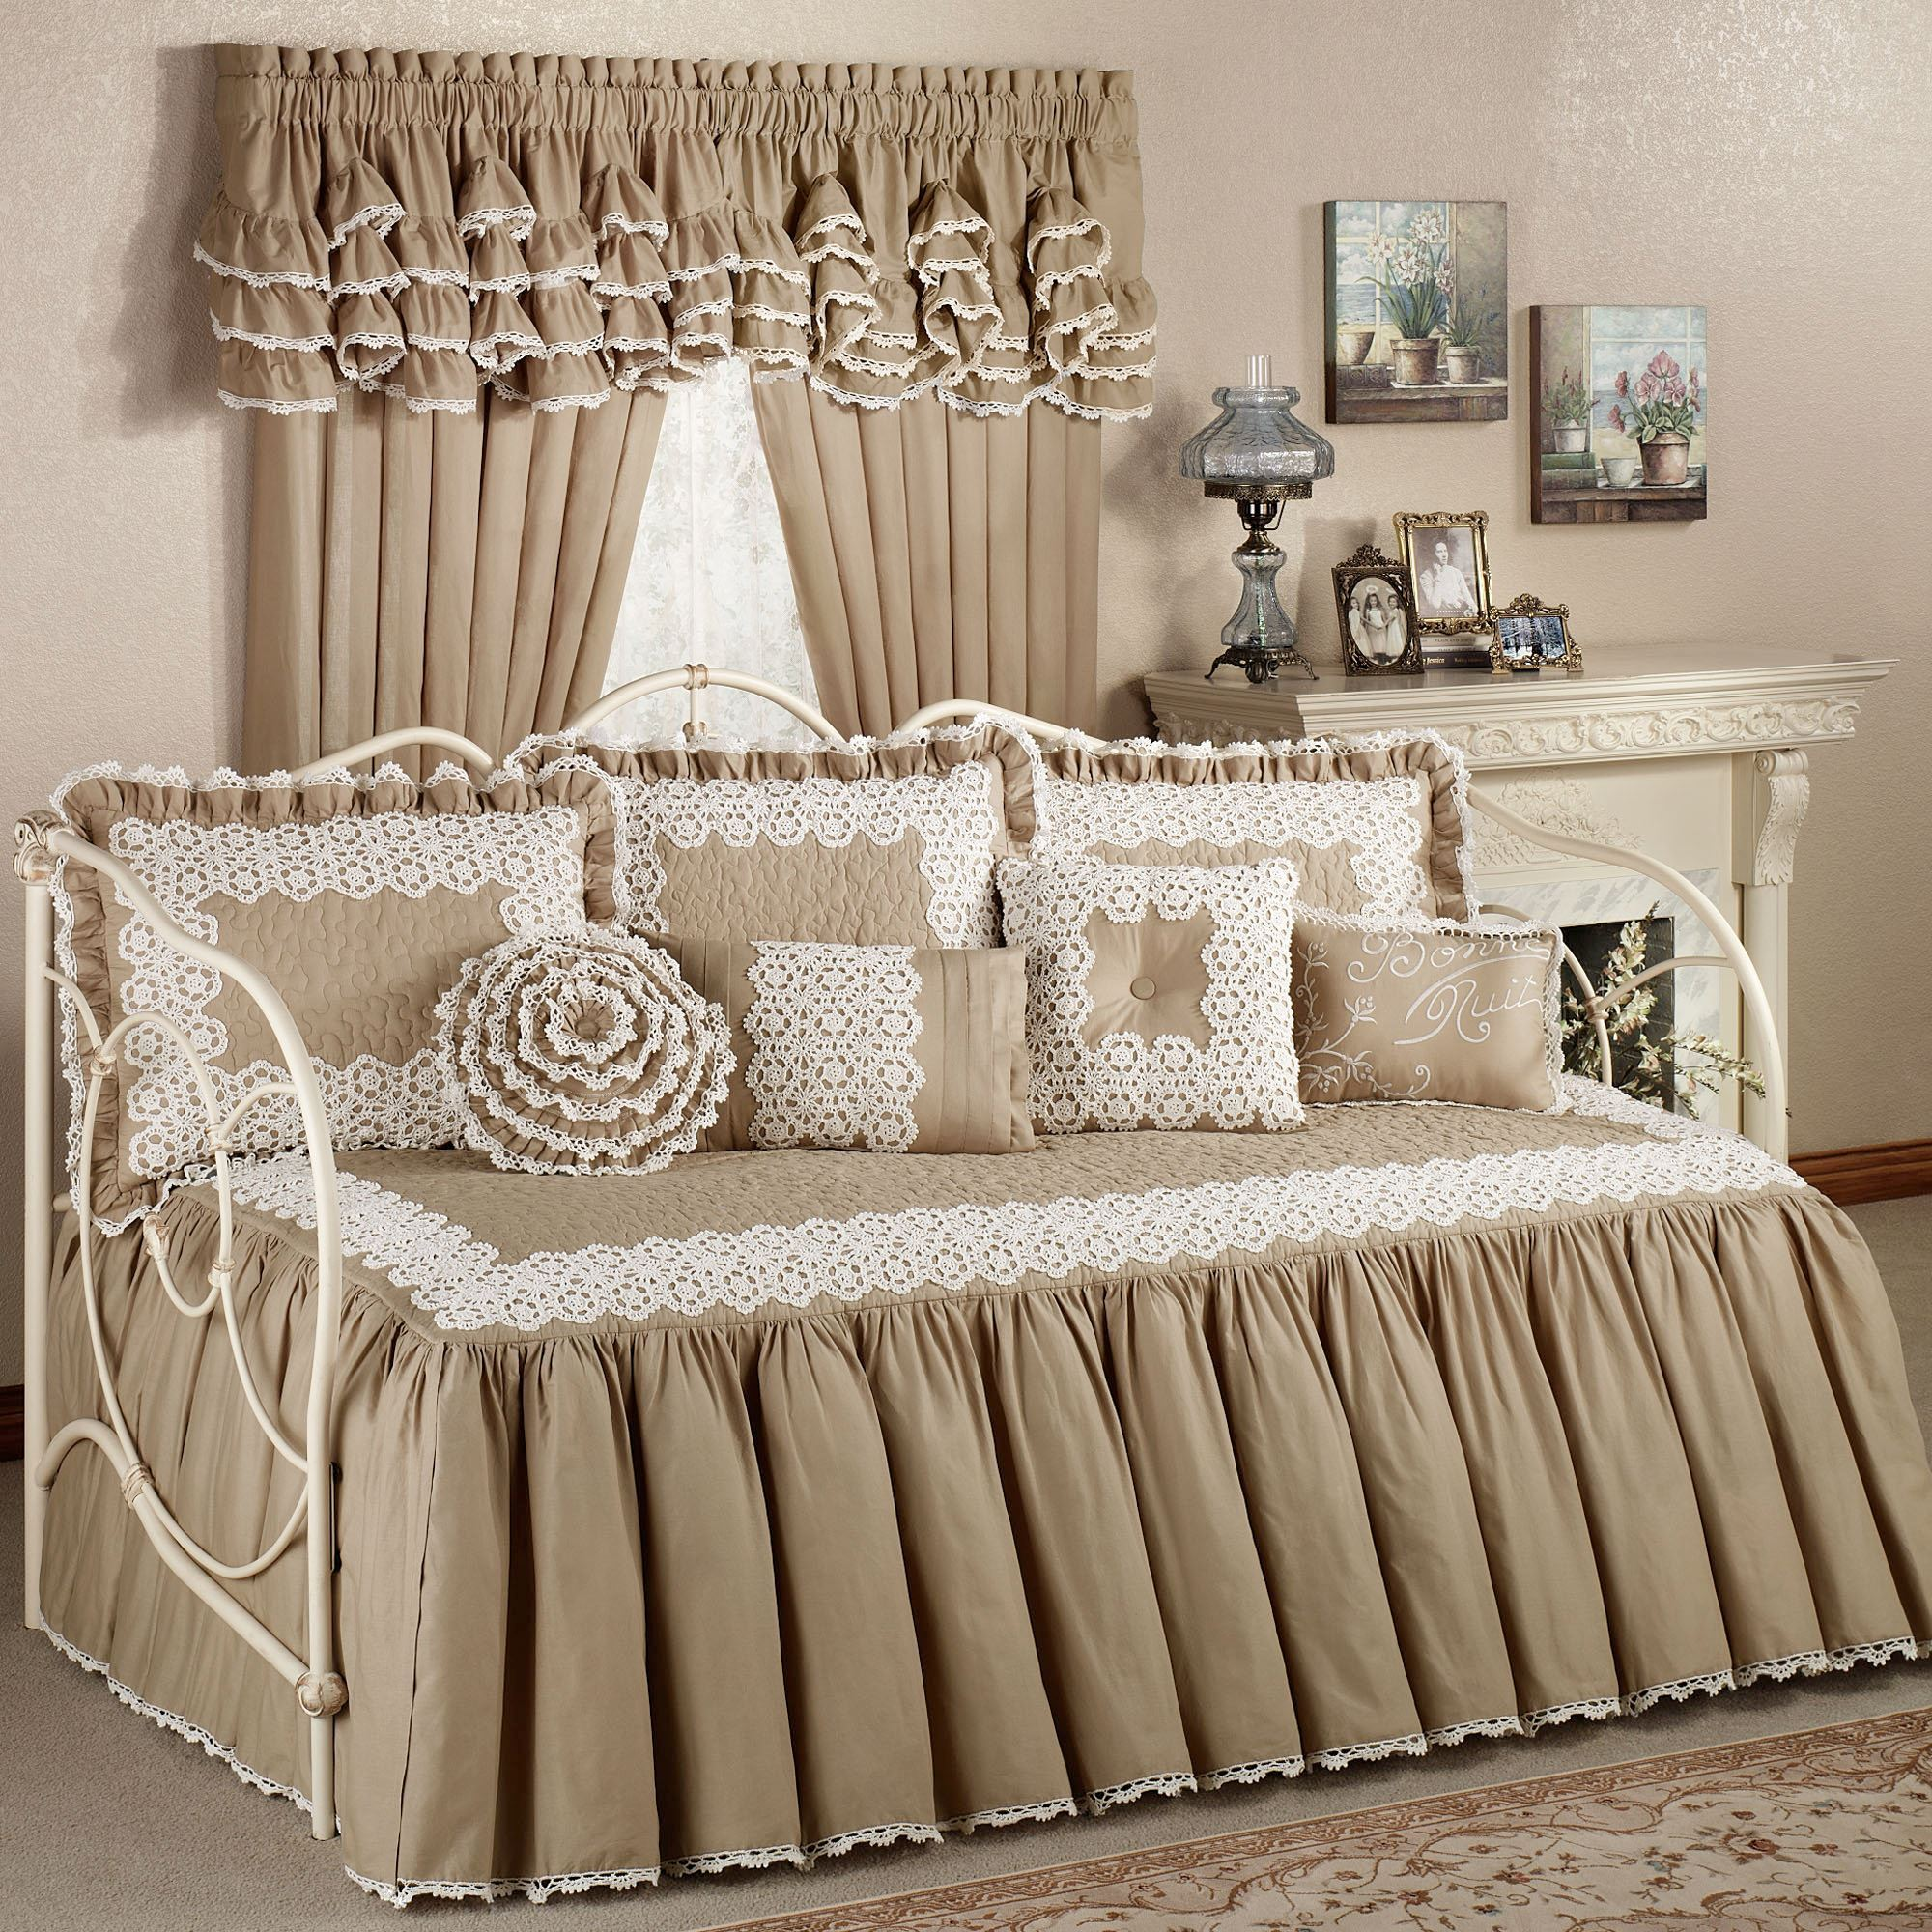 high chic of beautiful elegant shabby daybeds trundle sets kids boys bed daybed bedding with